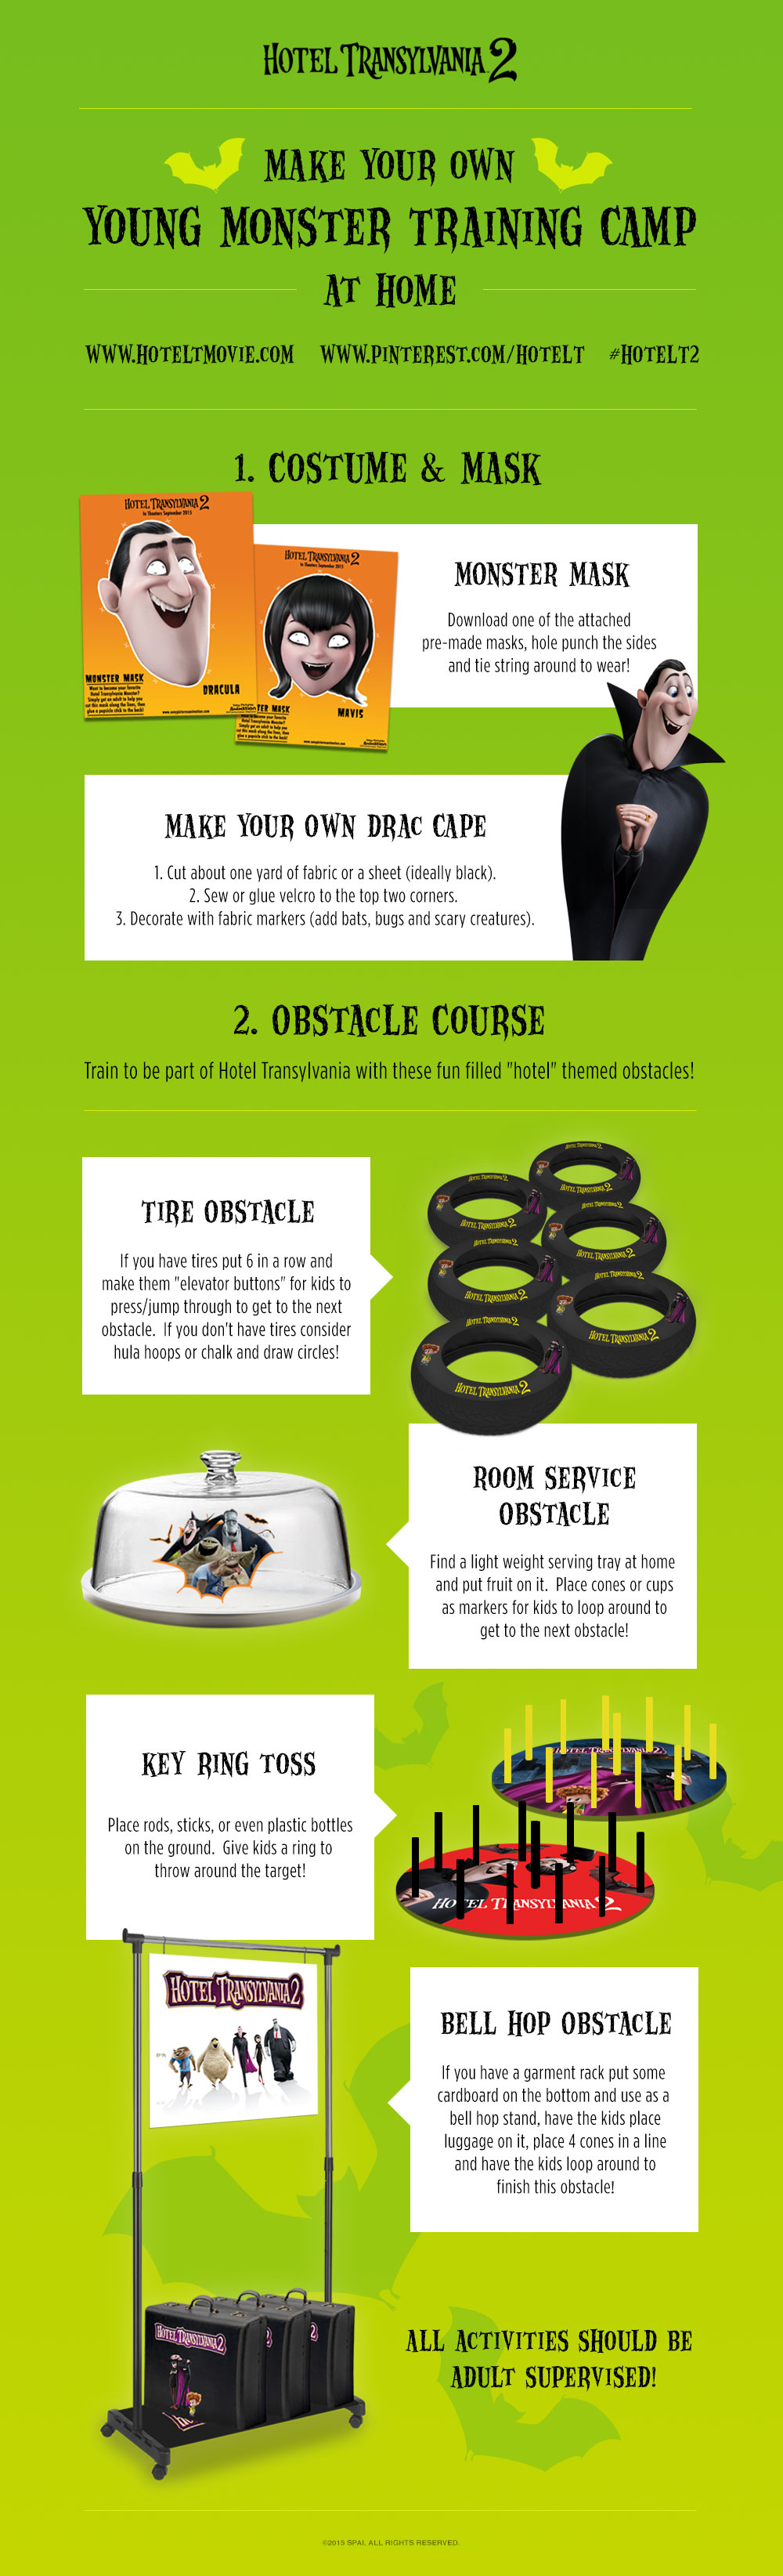 Check out this fun Young Monster Training Camp activity graphic courtesy of #HotelT2